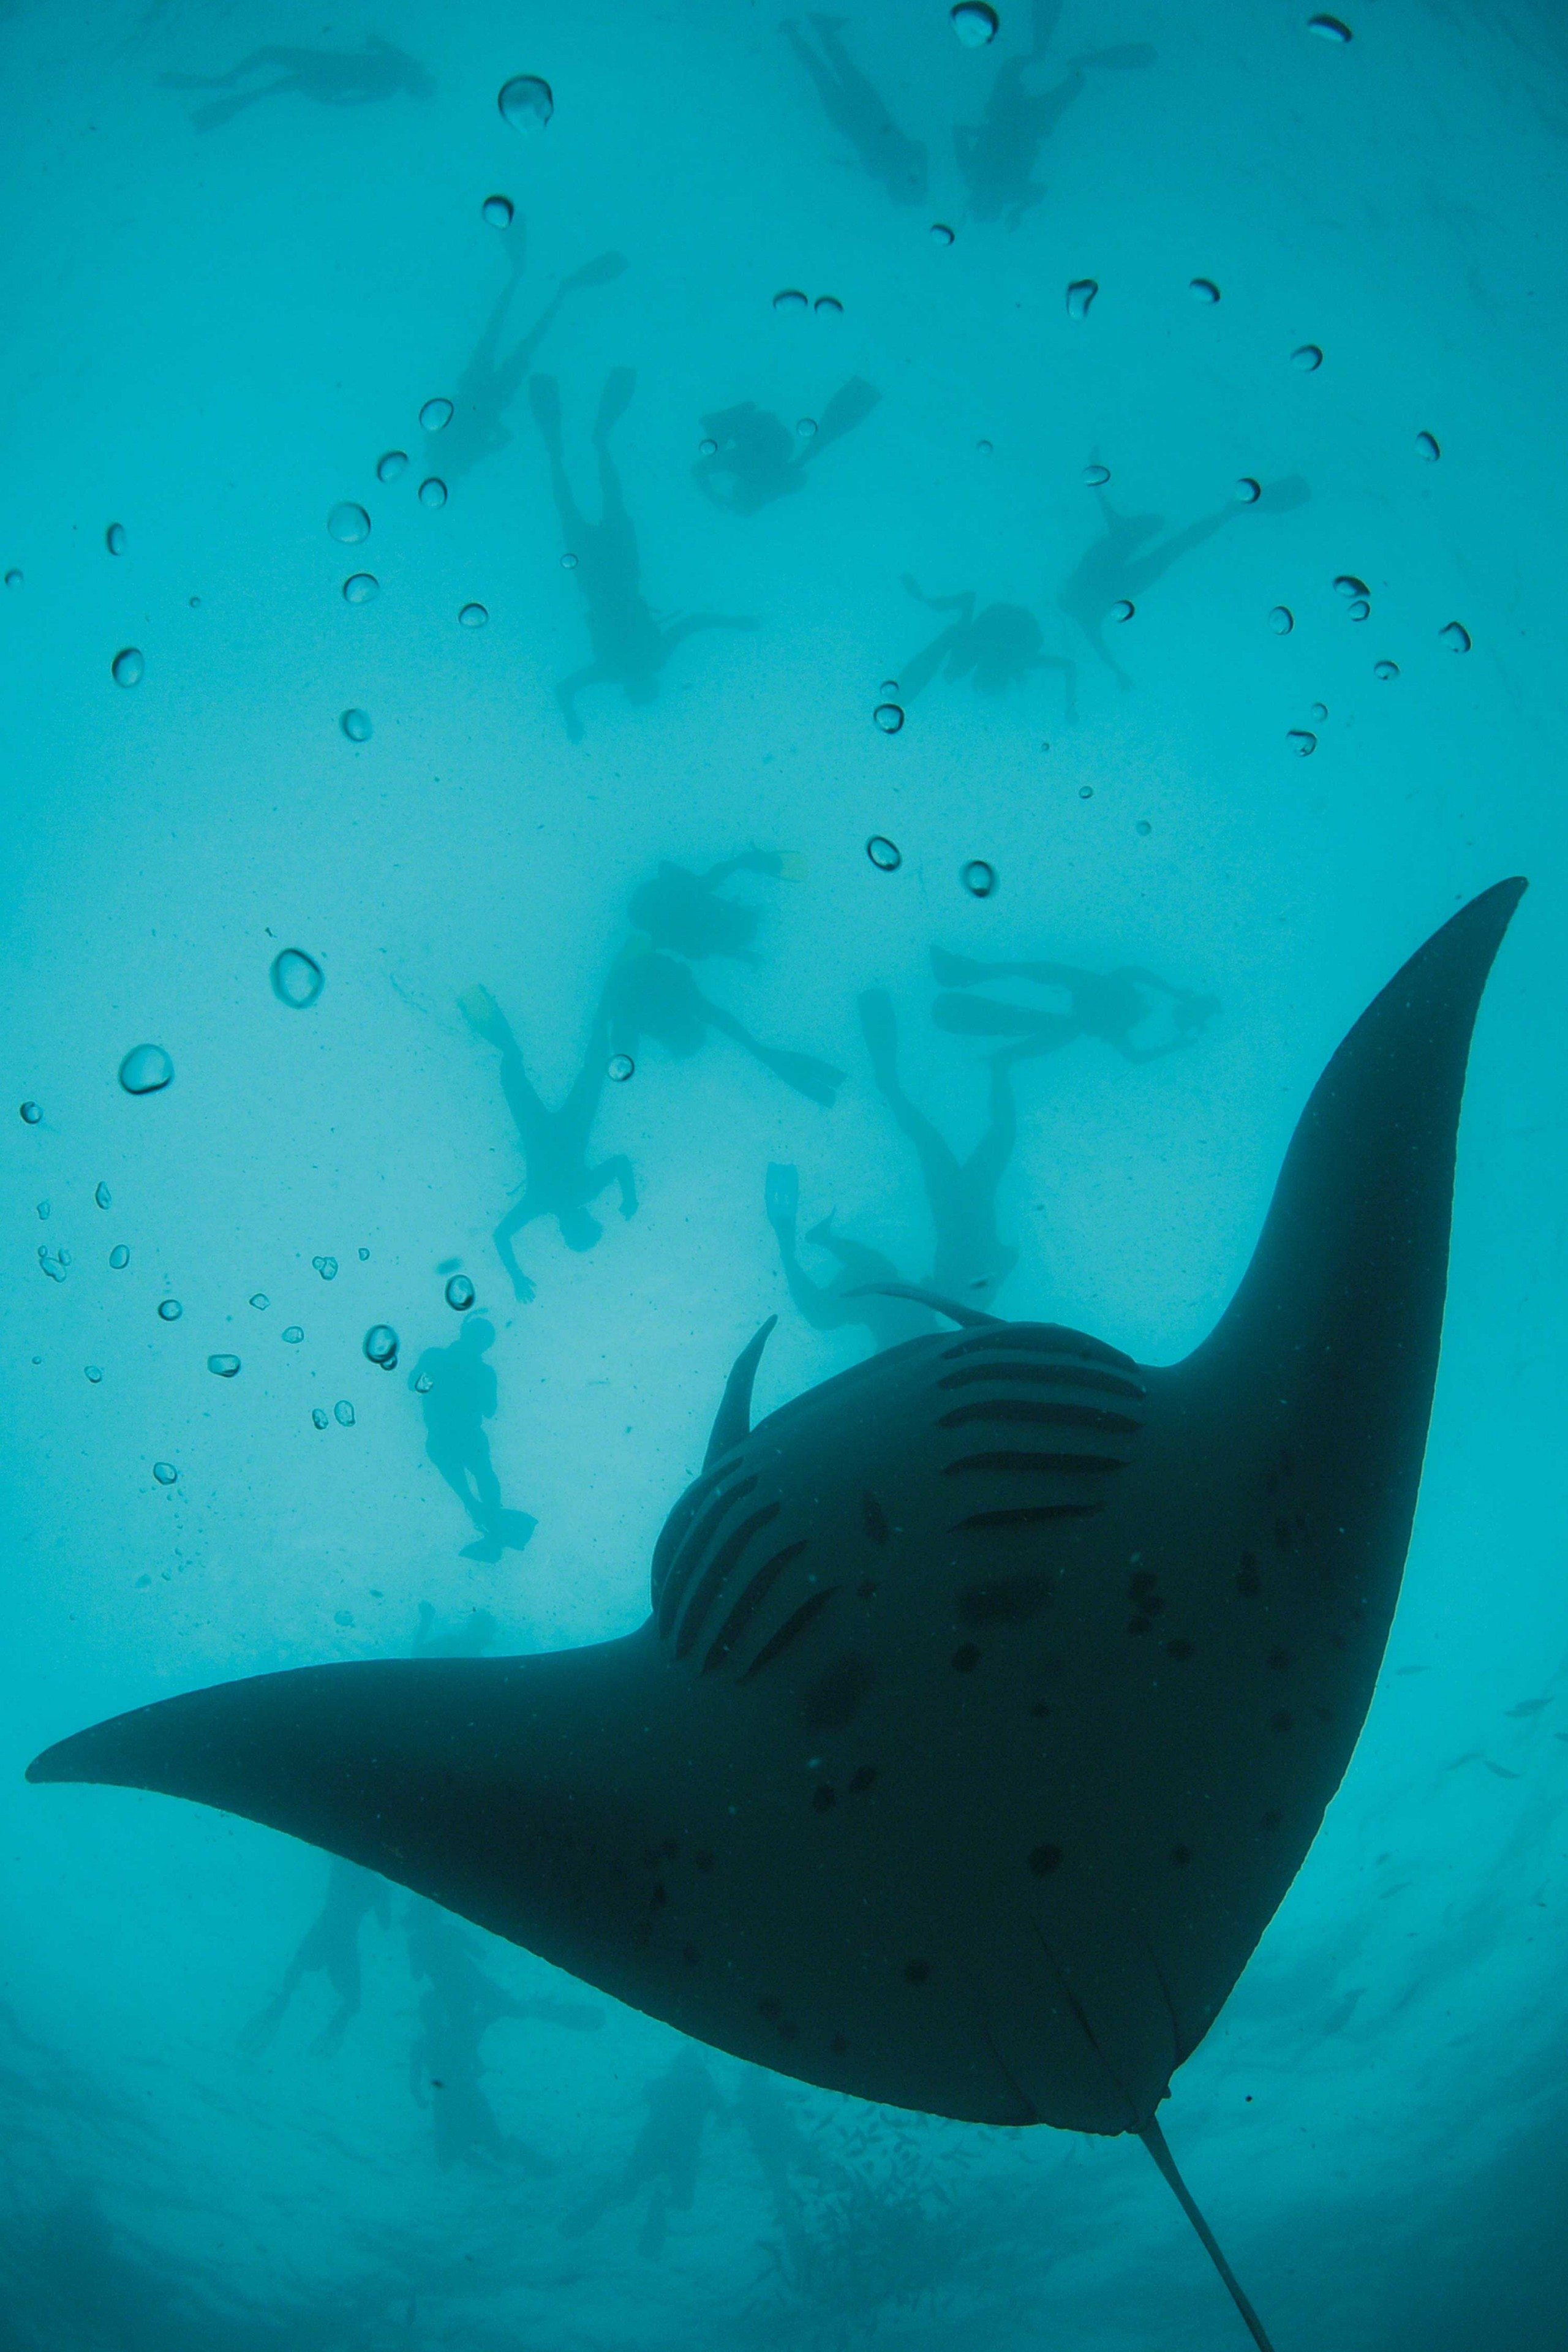 Manta ray swimming underwater with its dorsal fins spread open viewed - A Reef Manta Ray Manta Alfredi Swims In Tight Backward Summersaults Looping Over